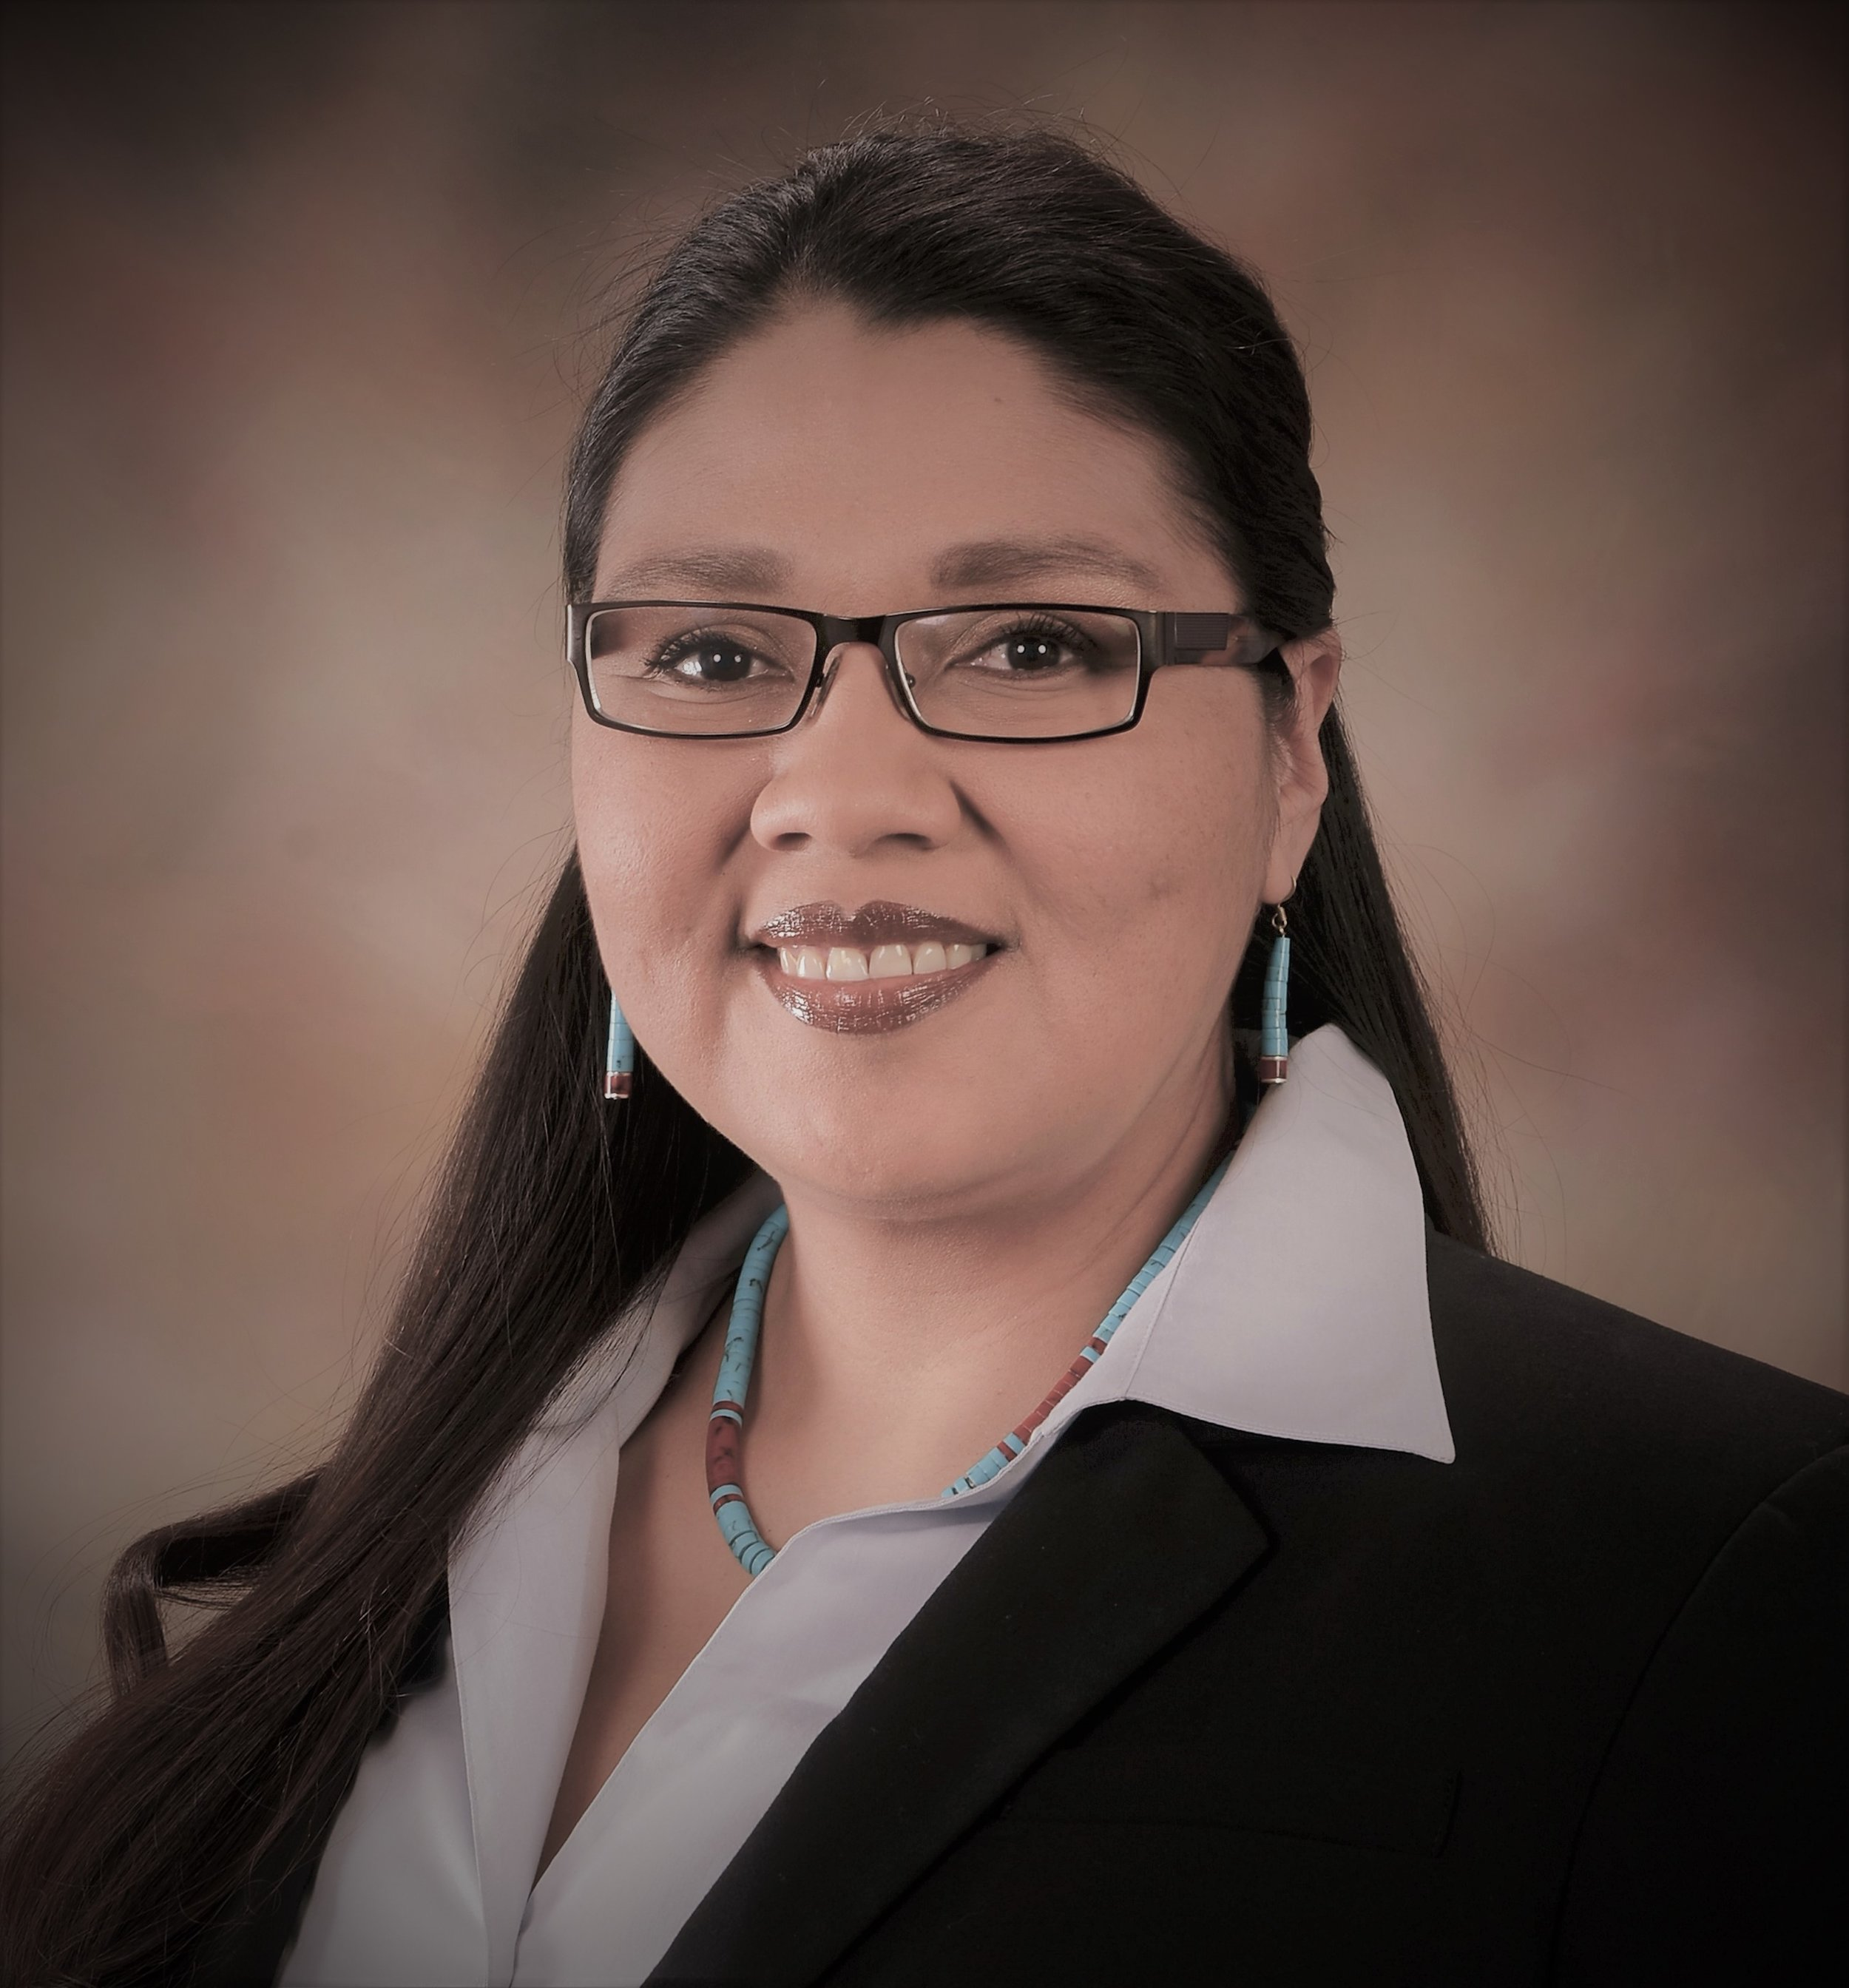 Dr. Anitra Warrior, Ph.D.     Lead Clinician   Ponca Tribe of Oklahoma   As a Ponca woman, I understand the challenges our people have faced when it comes to medical care. I hold these challenges close to my heart and my clinical work is driven by the needs of our people.